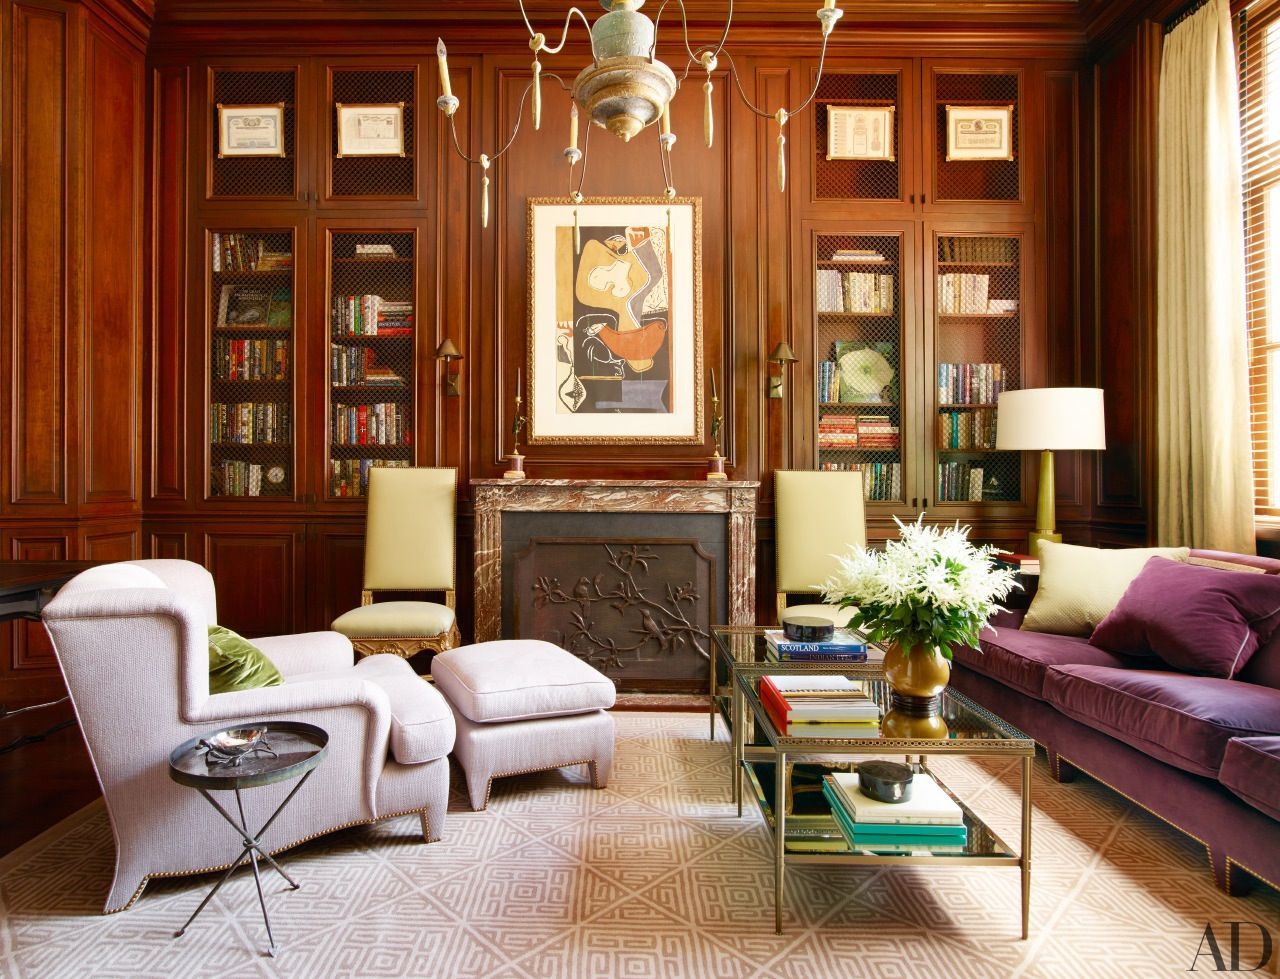 25 Inspiring Home Liries | Architects, Liry inspiration and ... on luxury home study room design, home office study design, traditional study room interior design, home office den study,